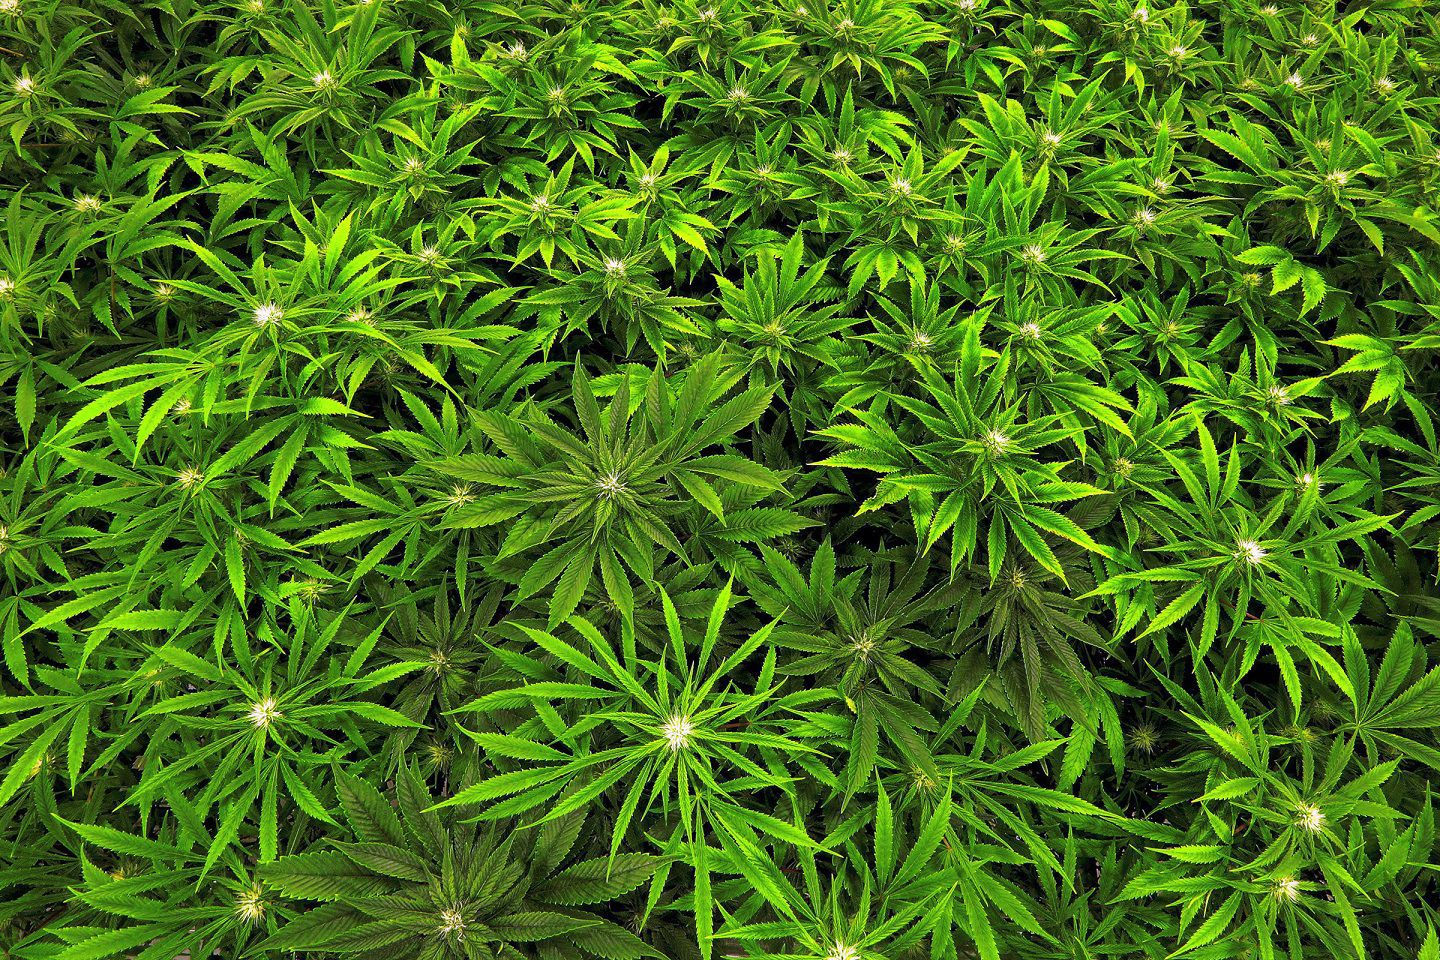 Medical marijuana dispensary reportedly coming to Chemung County